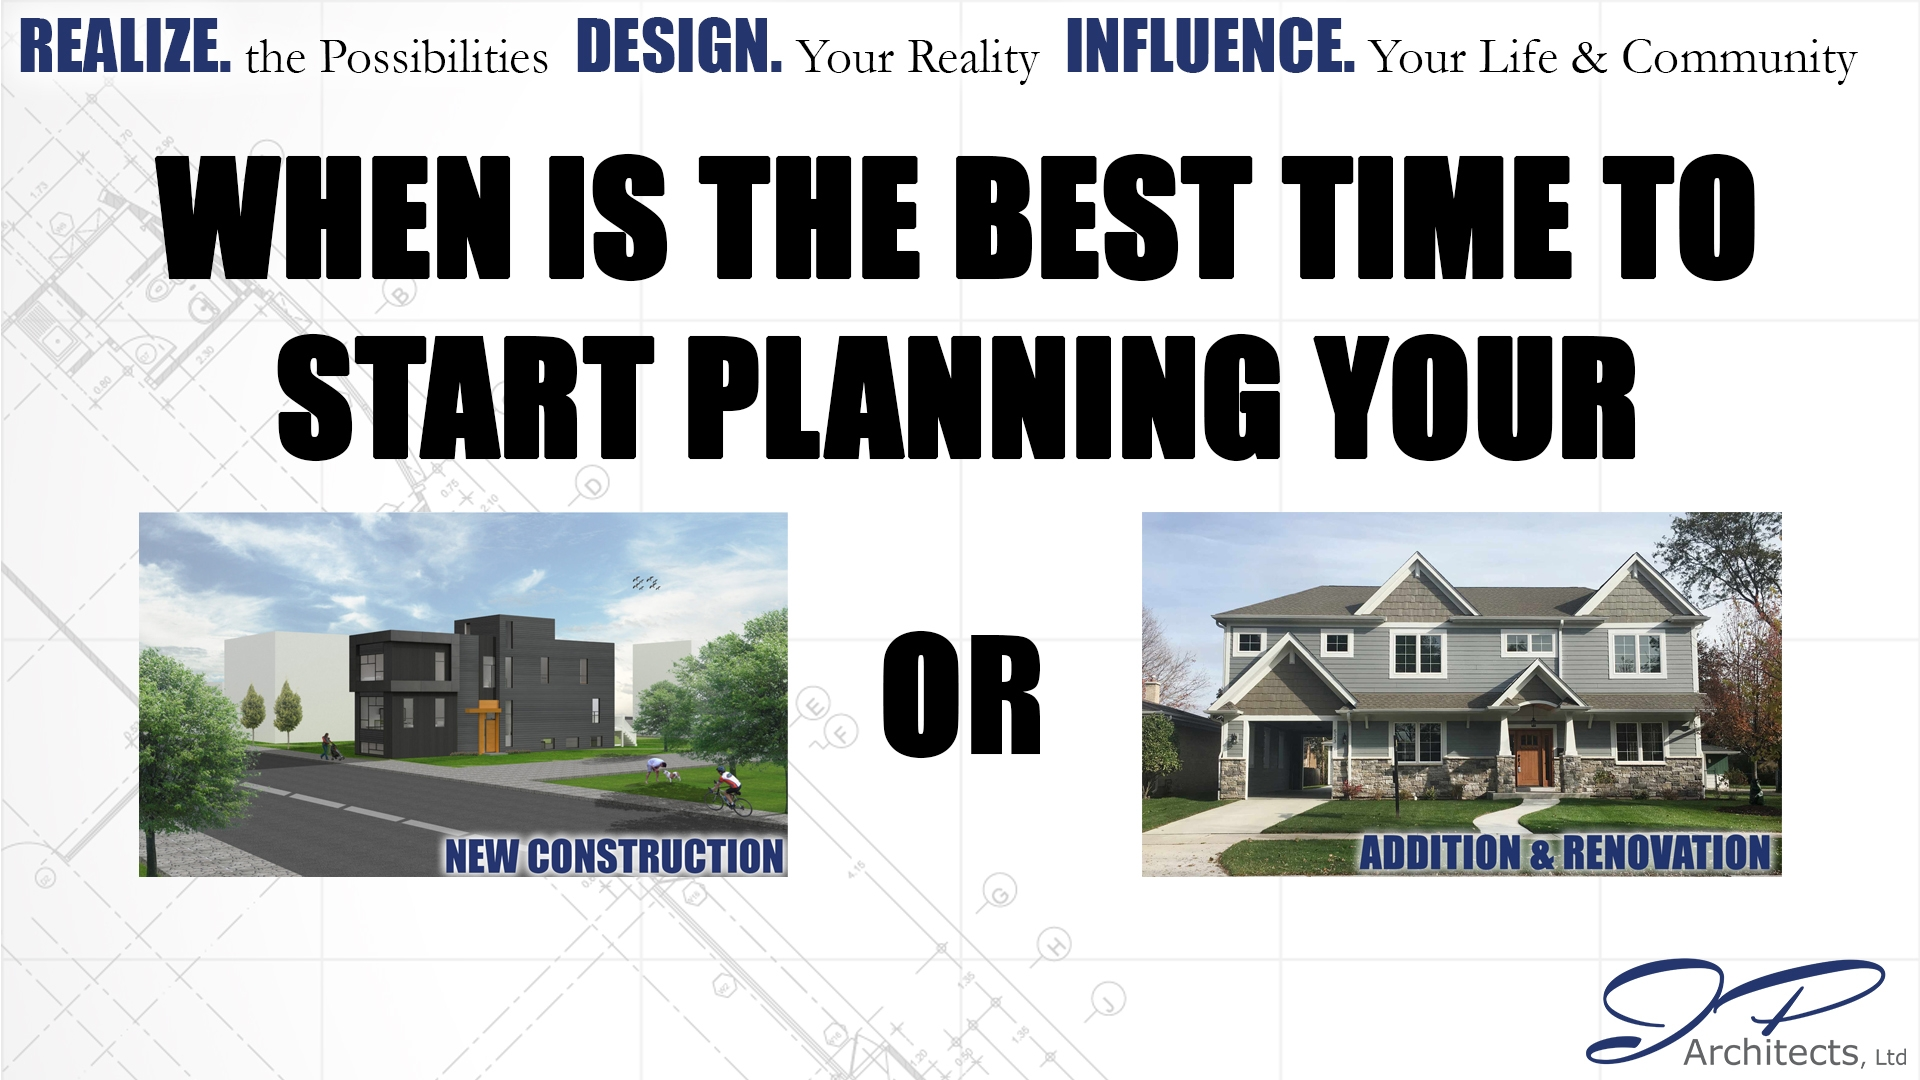 This is the cover image for our blog about when the best time to start planning your new construction, addition and renovation